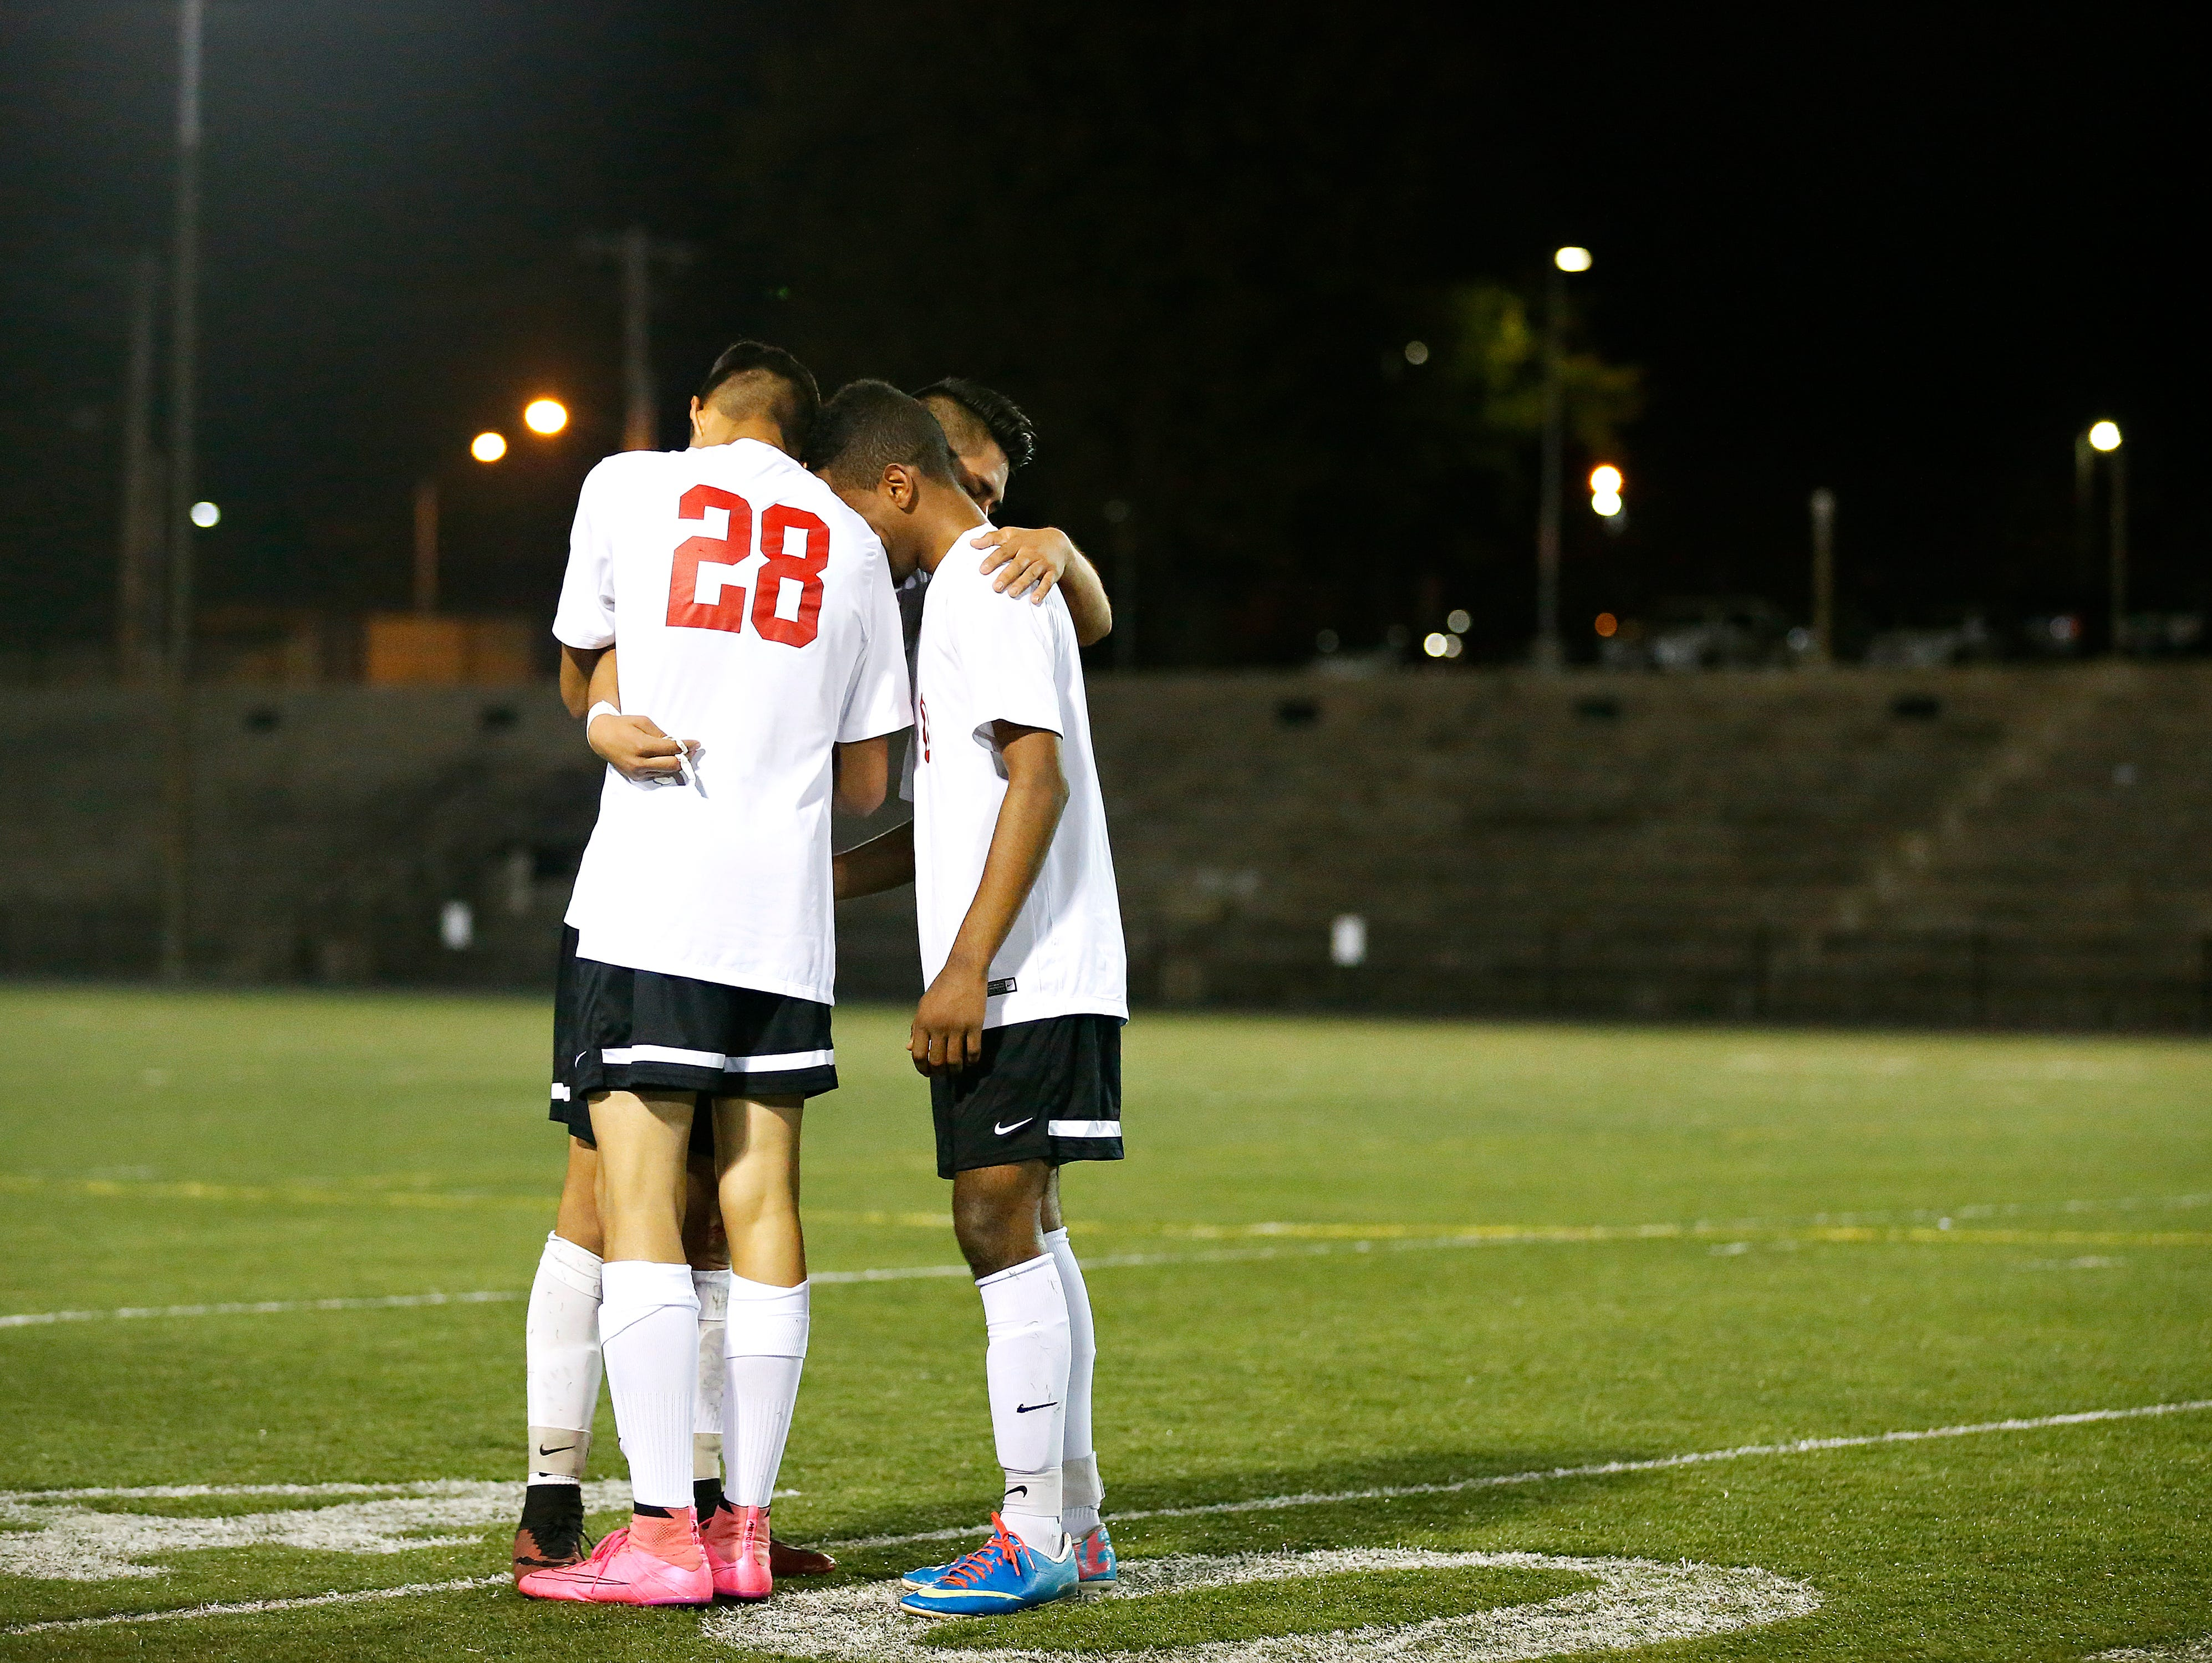 Central High School players Gerardo Botello (28) Manny Torres (11) and Ally Mohamed (10) console each other after the Bulldogs sectional playoff loss against the Nixa Eagles at Harrison Stadium in Springfield, Mo. on Nov. 3, 2015.